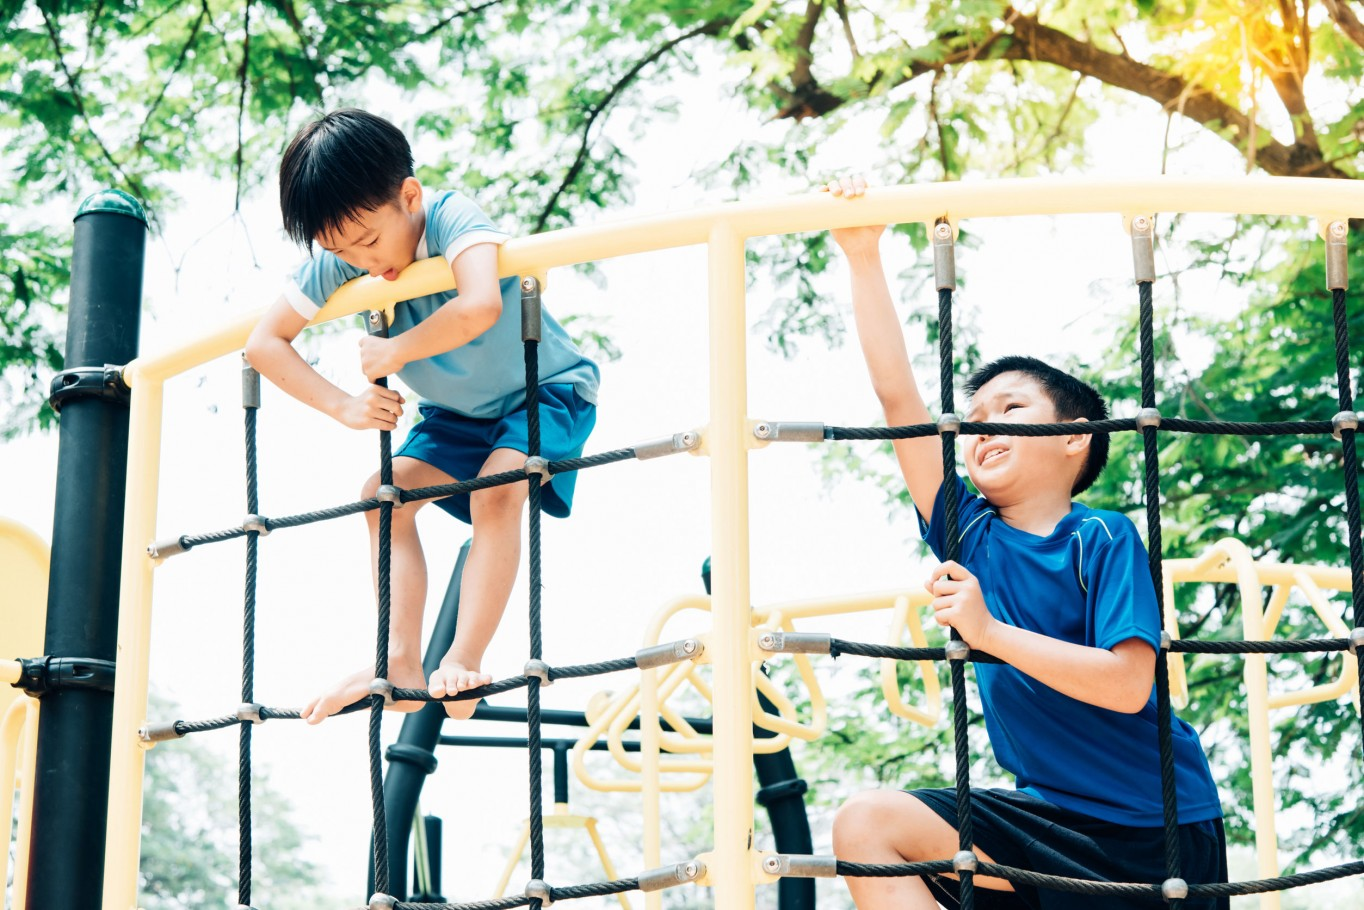 Vintage color tone, Young asian boy climb on the black rope fence and yellow bar by his hand to exercise at out door playground under the big tree.